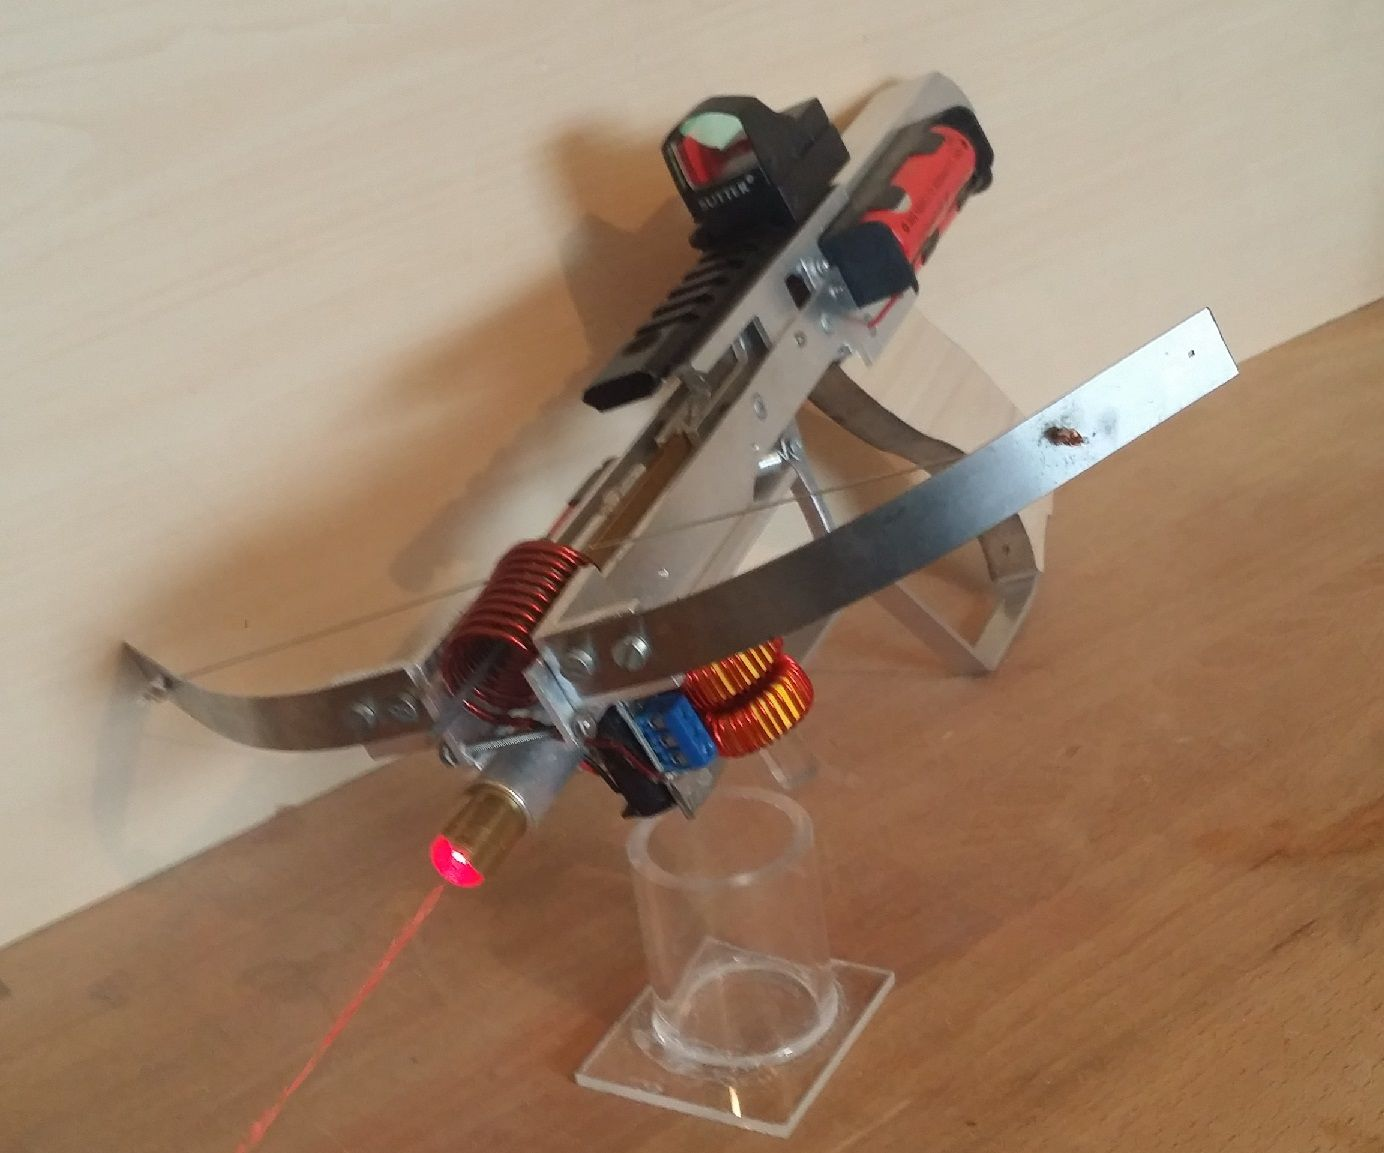 Half Life 2 Glowing Bolt Crossbow: 5 Steps (with Pictures)